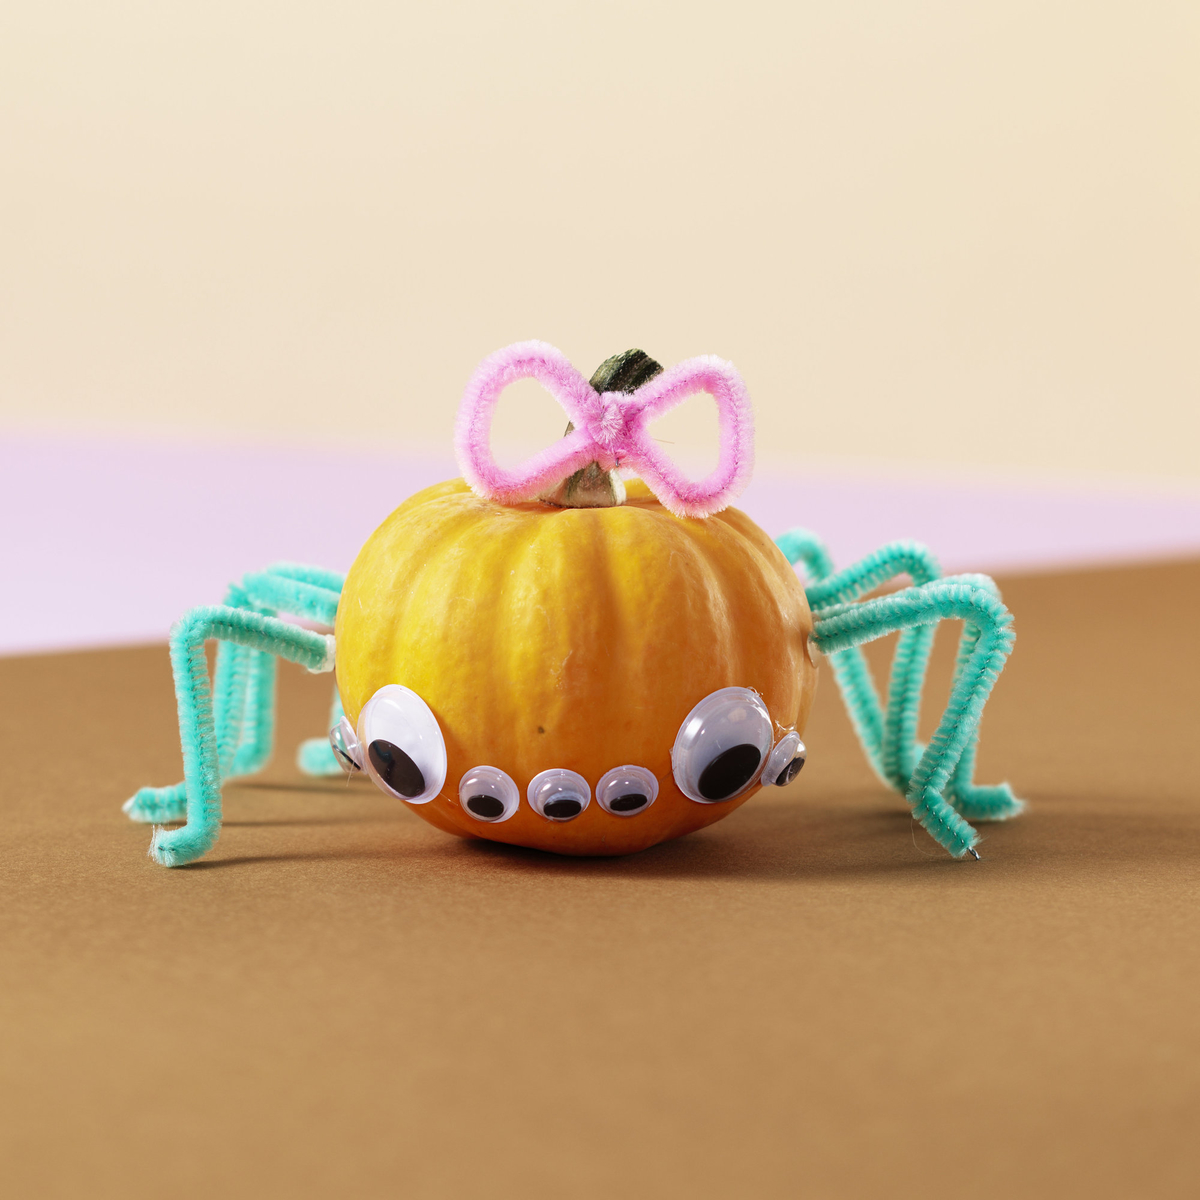 Make a scary pumpkin spider